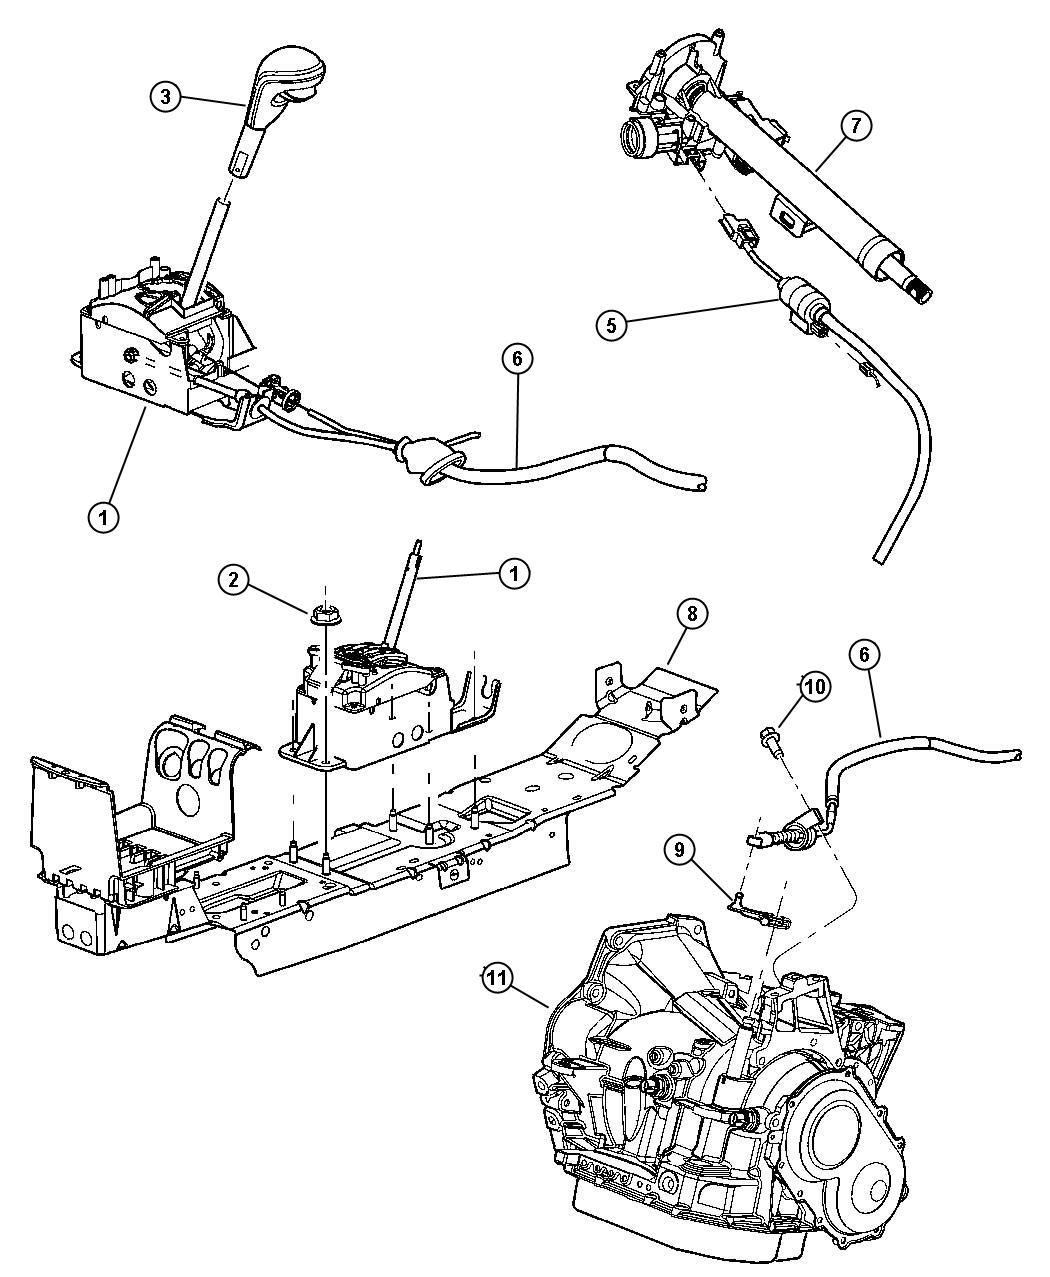 Service manual Changeing Gear Shift Assembly 2004 Jeep